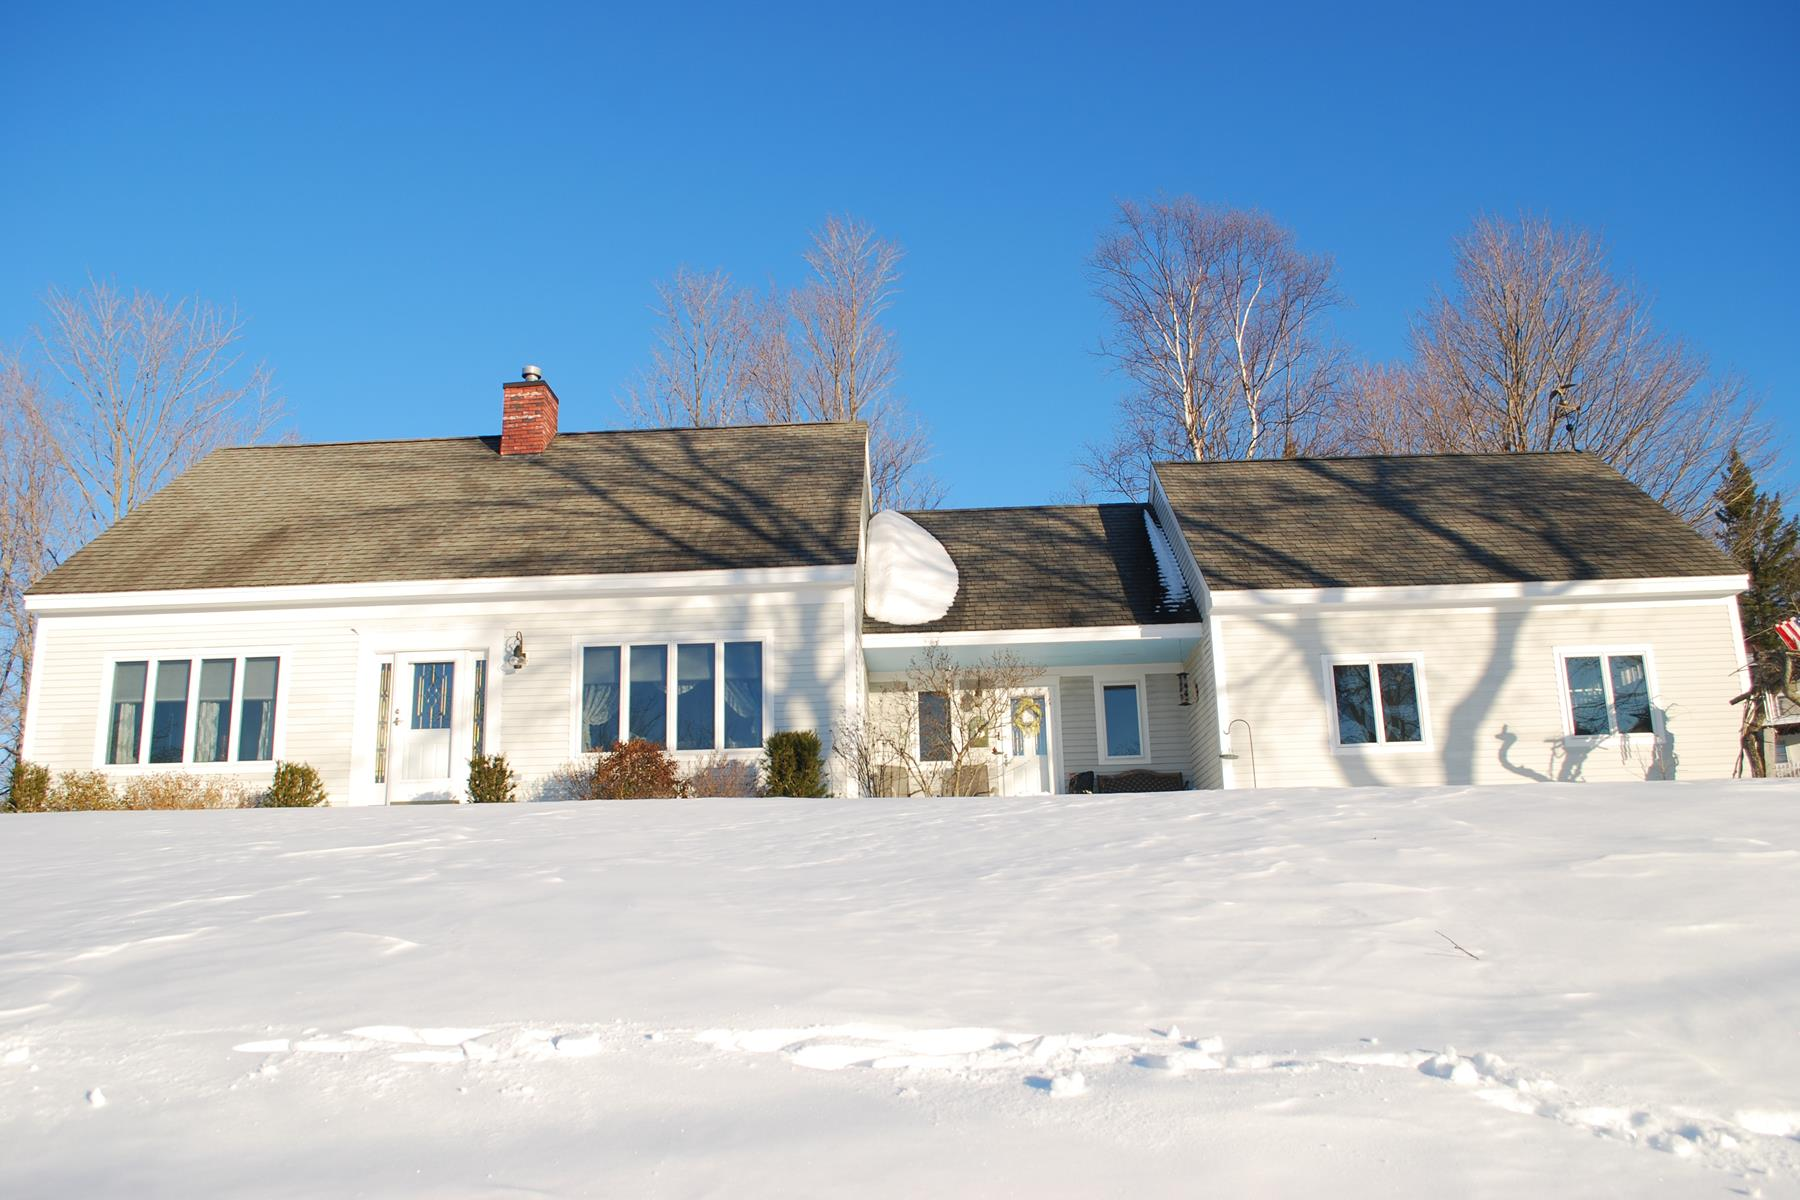 Single Family Home for Sale at 267 Kearsarge Mountain, Wilmot Wilmot, New Hampshire, 03287 United States